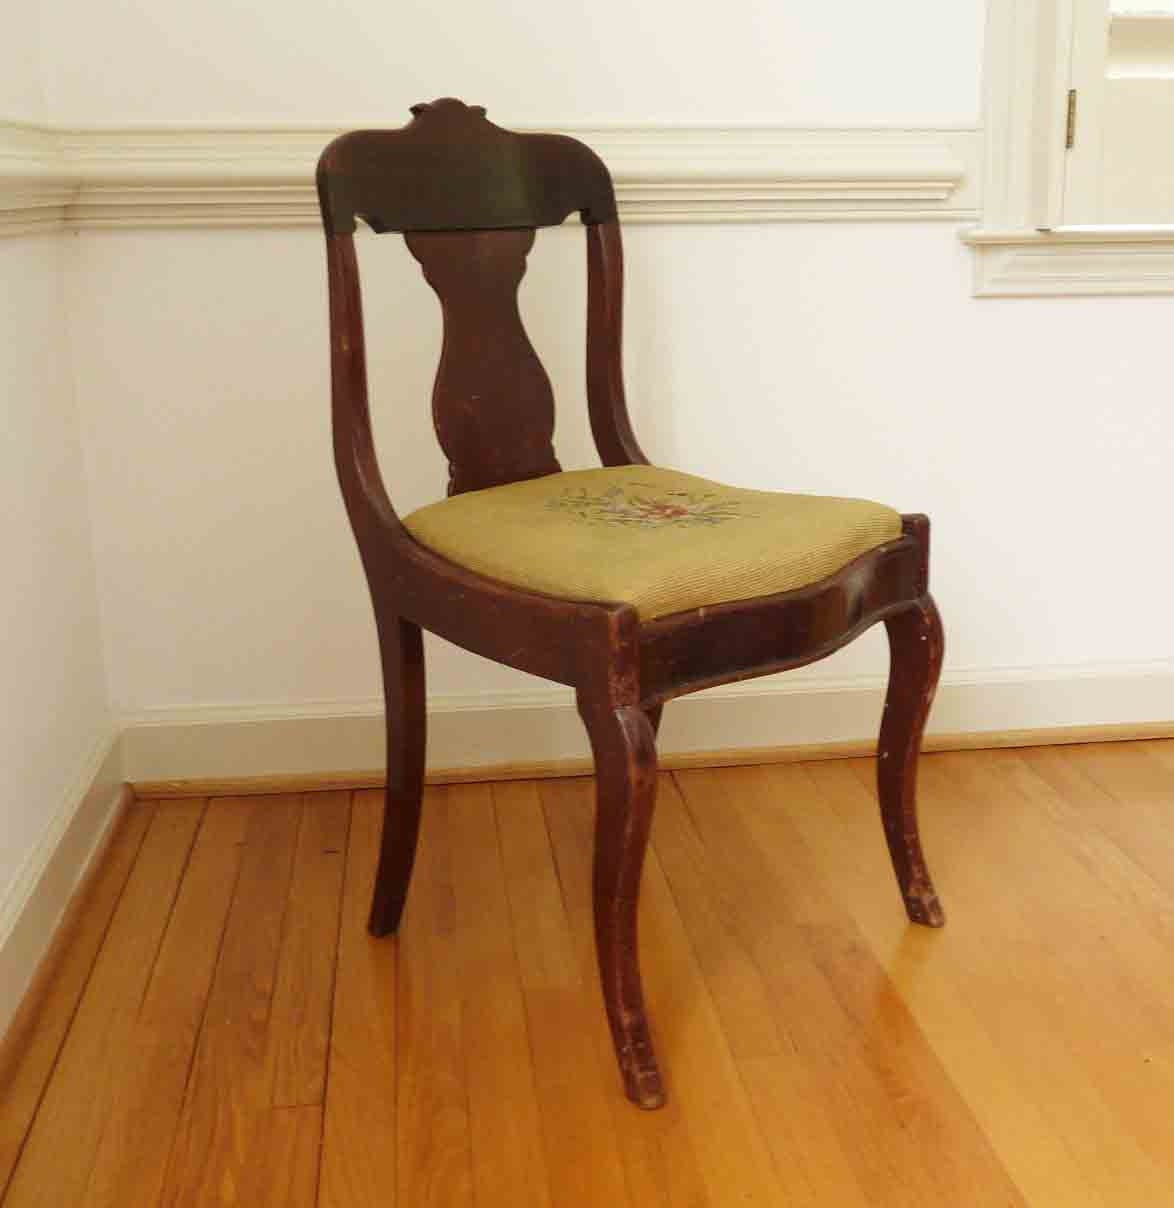 vintage antique wood chair embroidered seat home decor